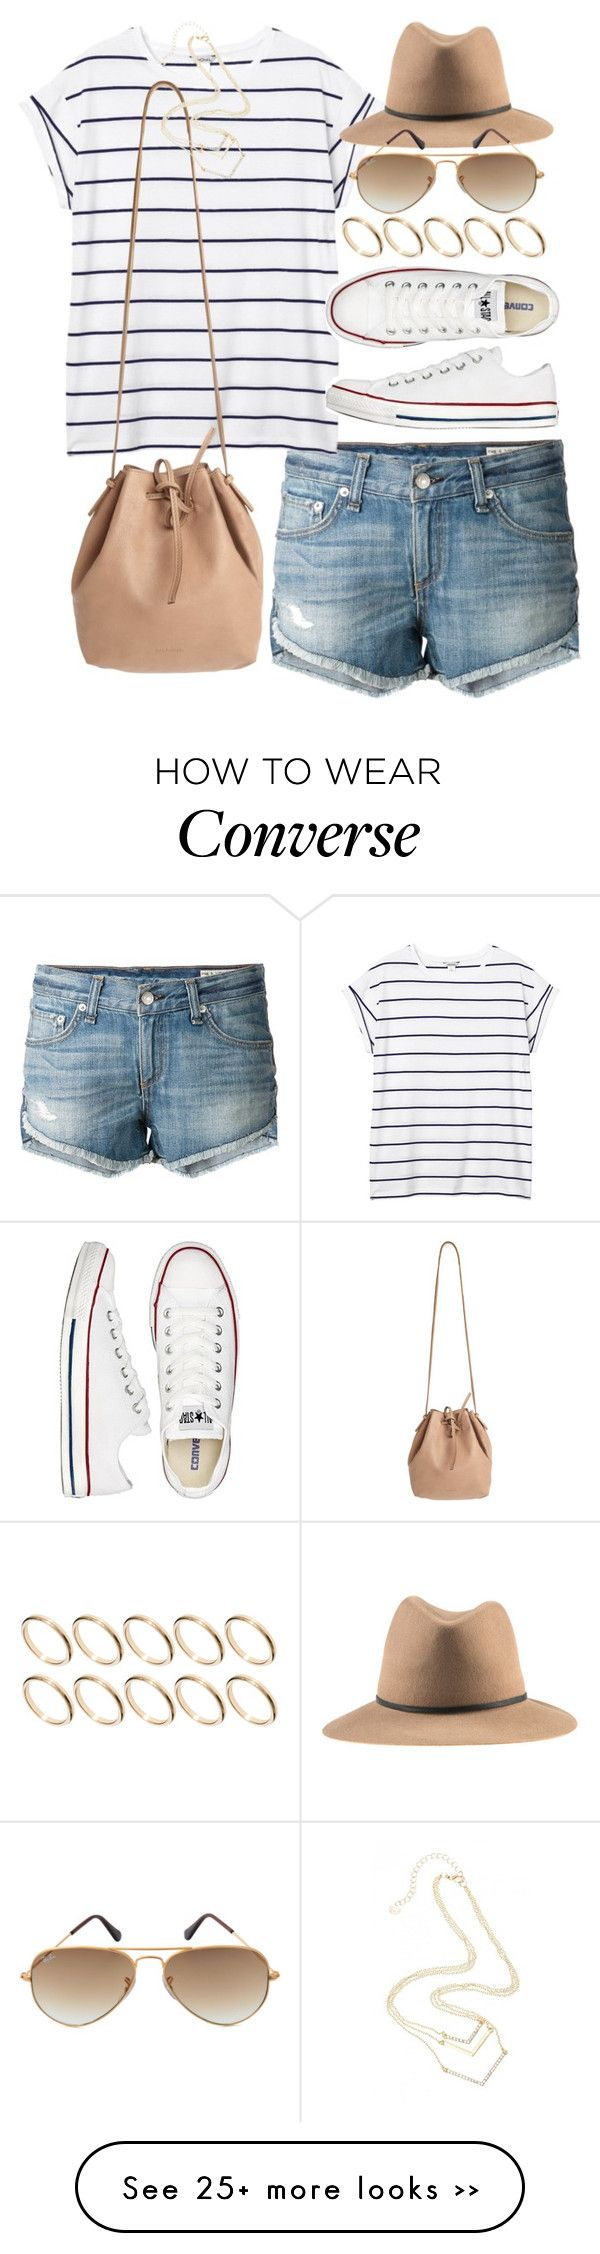 """Outfit for visiting the beach"" by ferned on Polyvore"